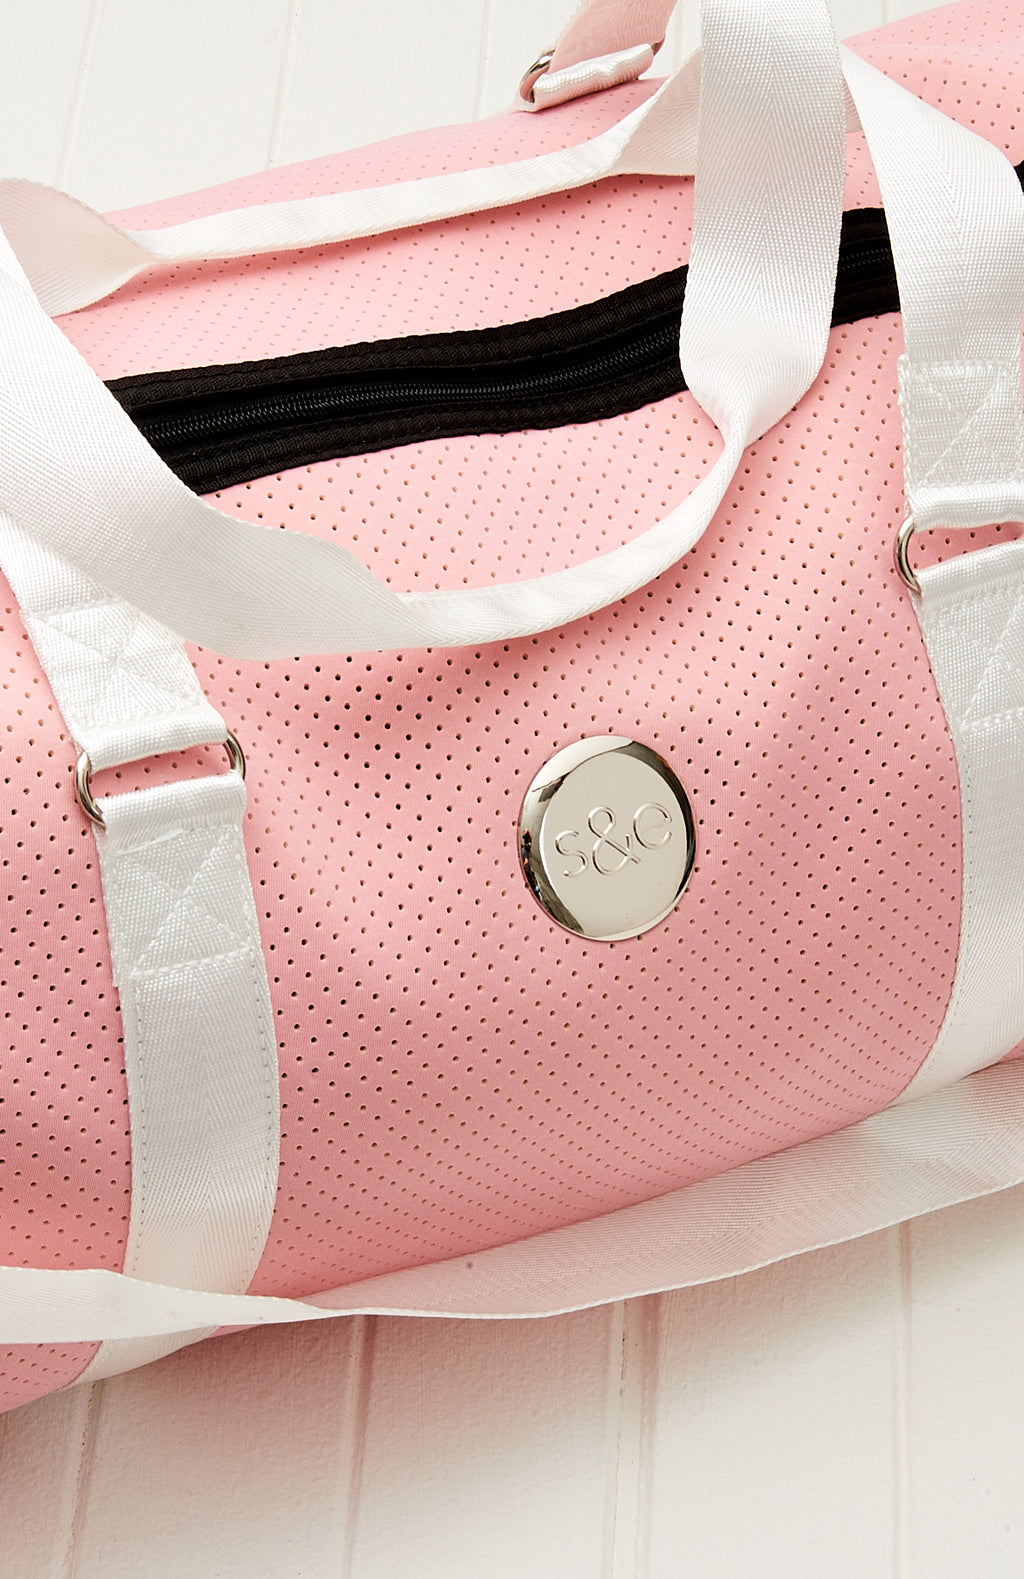 Neoprene Duffle Weekend Tote Travel Bag